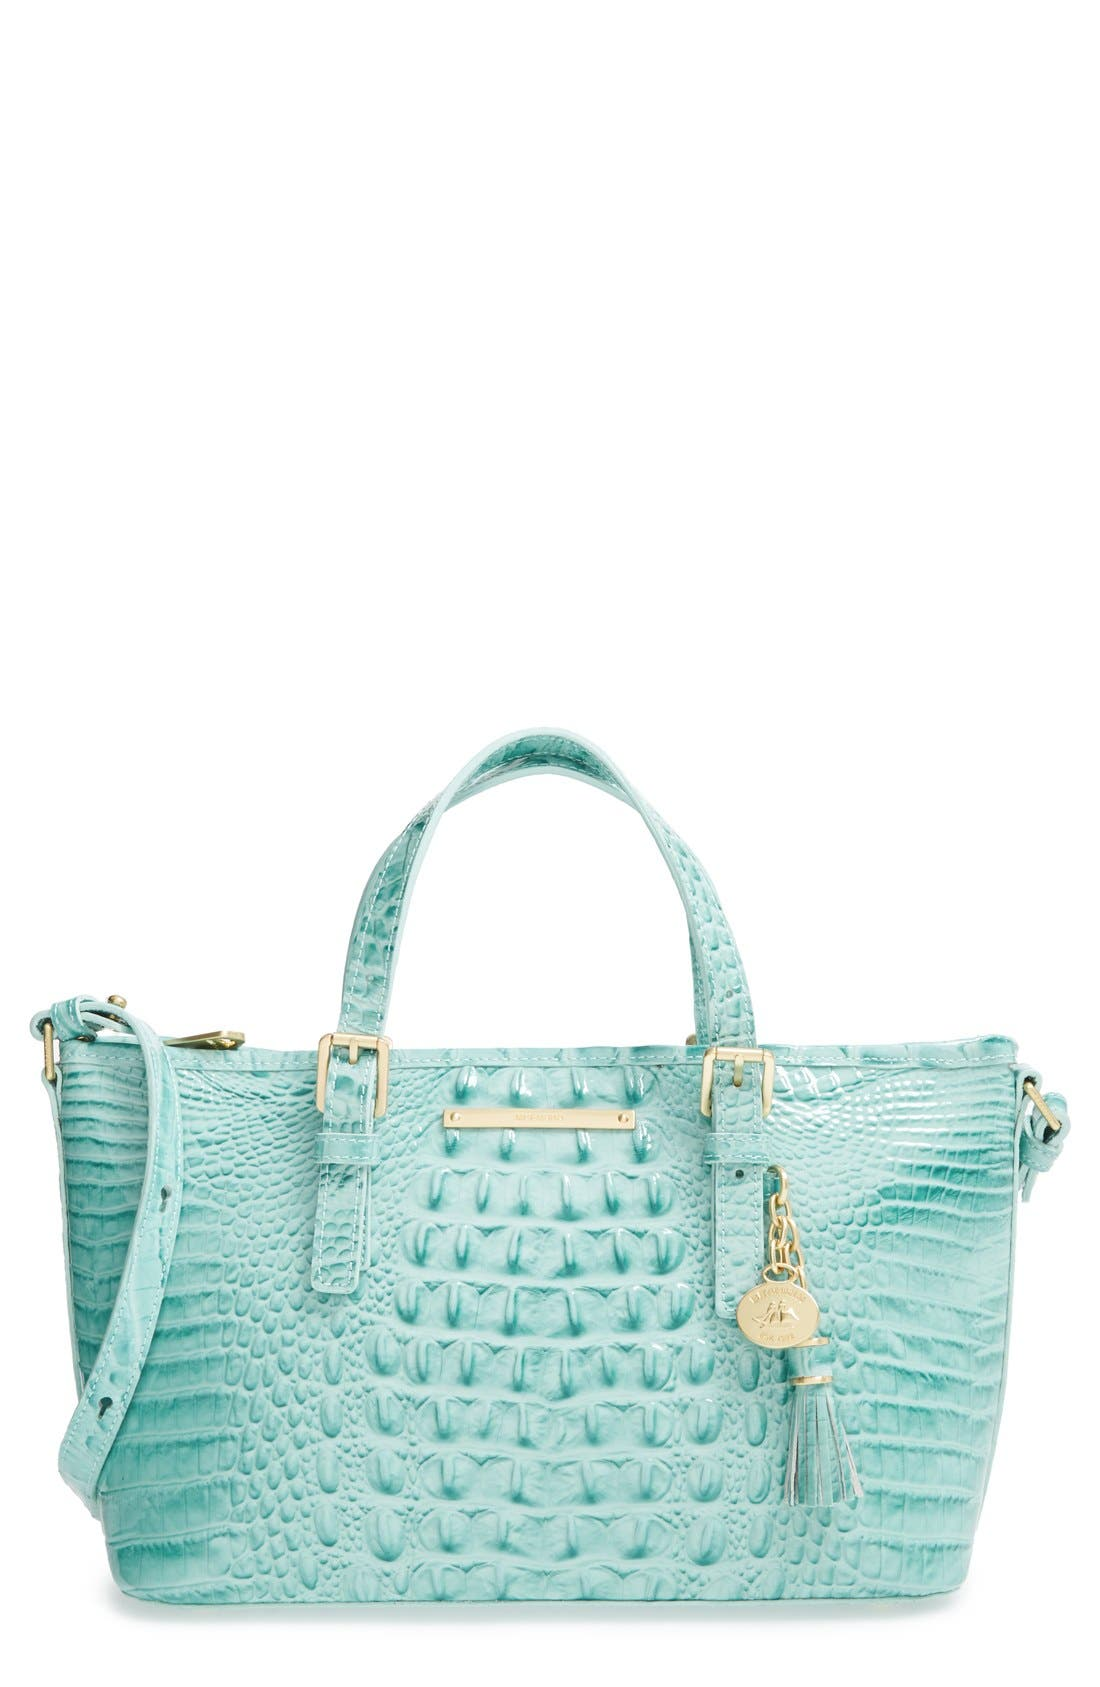 Main Image - Brahmin 'Melbourne - Mini Asher' Croc Embossed Leather Tote